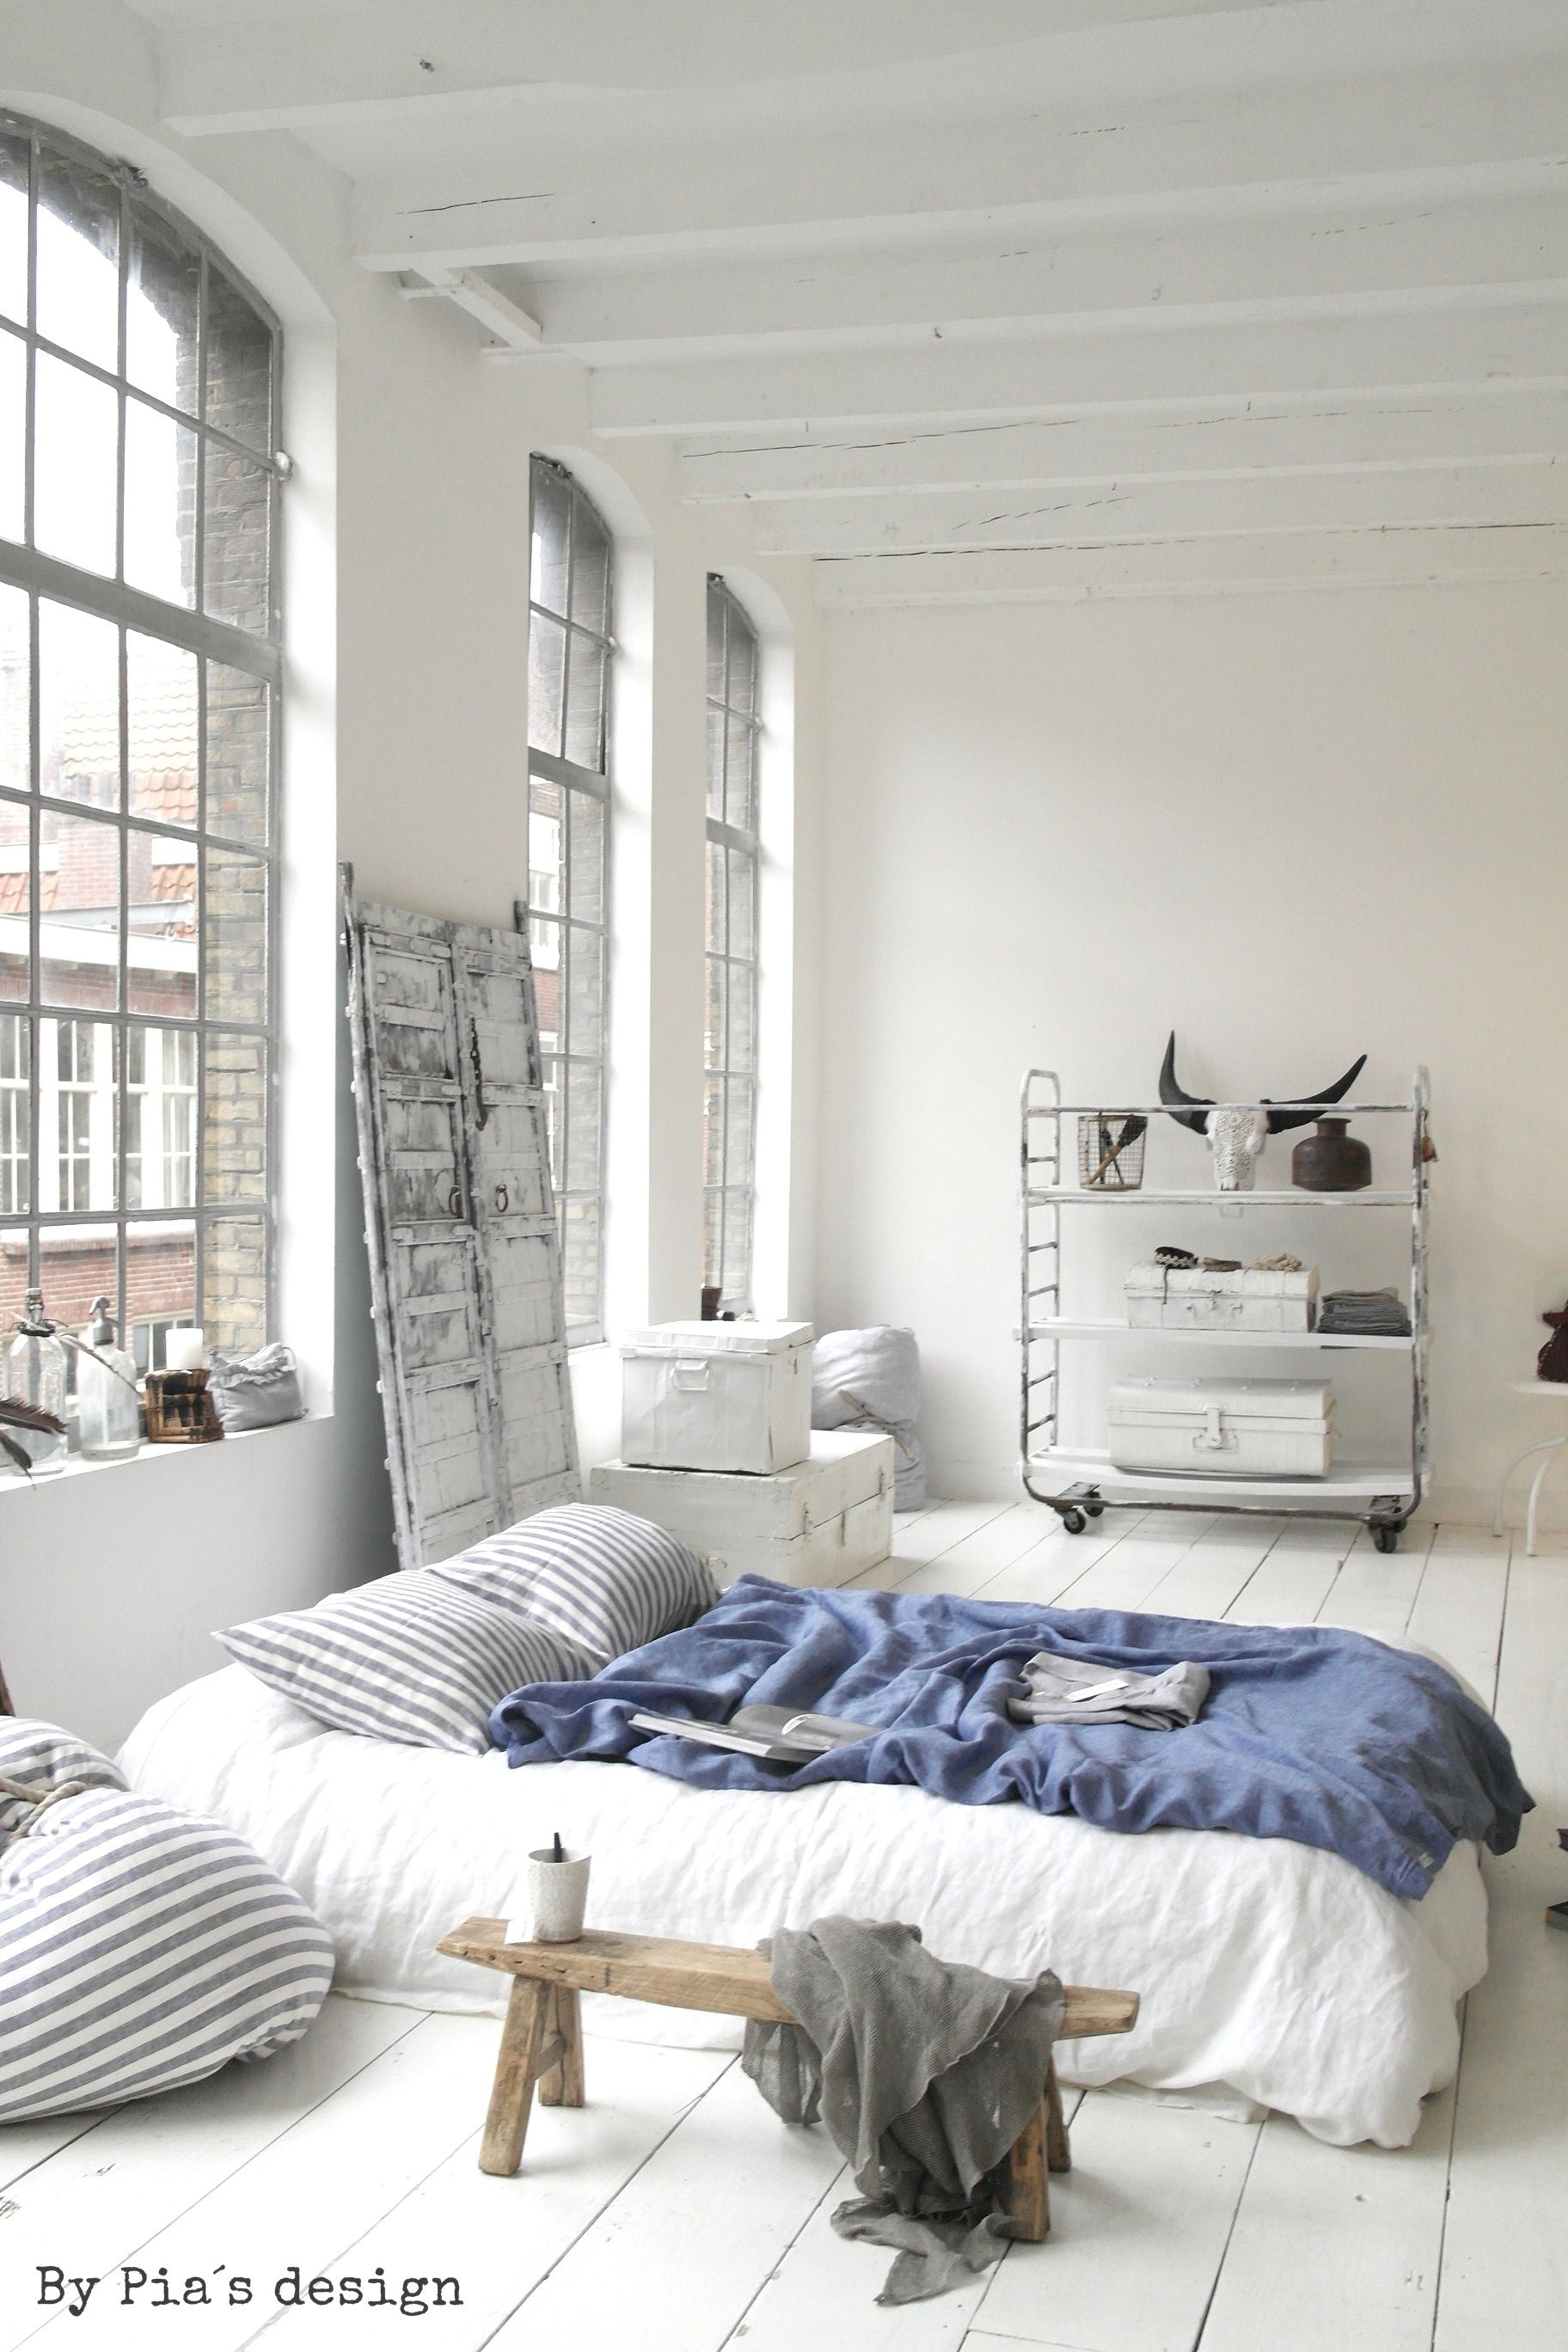 All White Minimalistic Bedroom With Bed On The Floor Natural Light Big Windows Blue Blanket Accent Minimalism Interior Bedroom Design Minimalist Bedroom